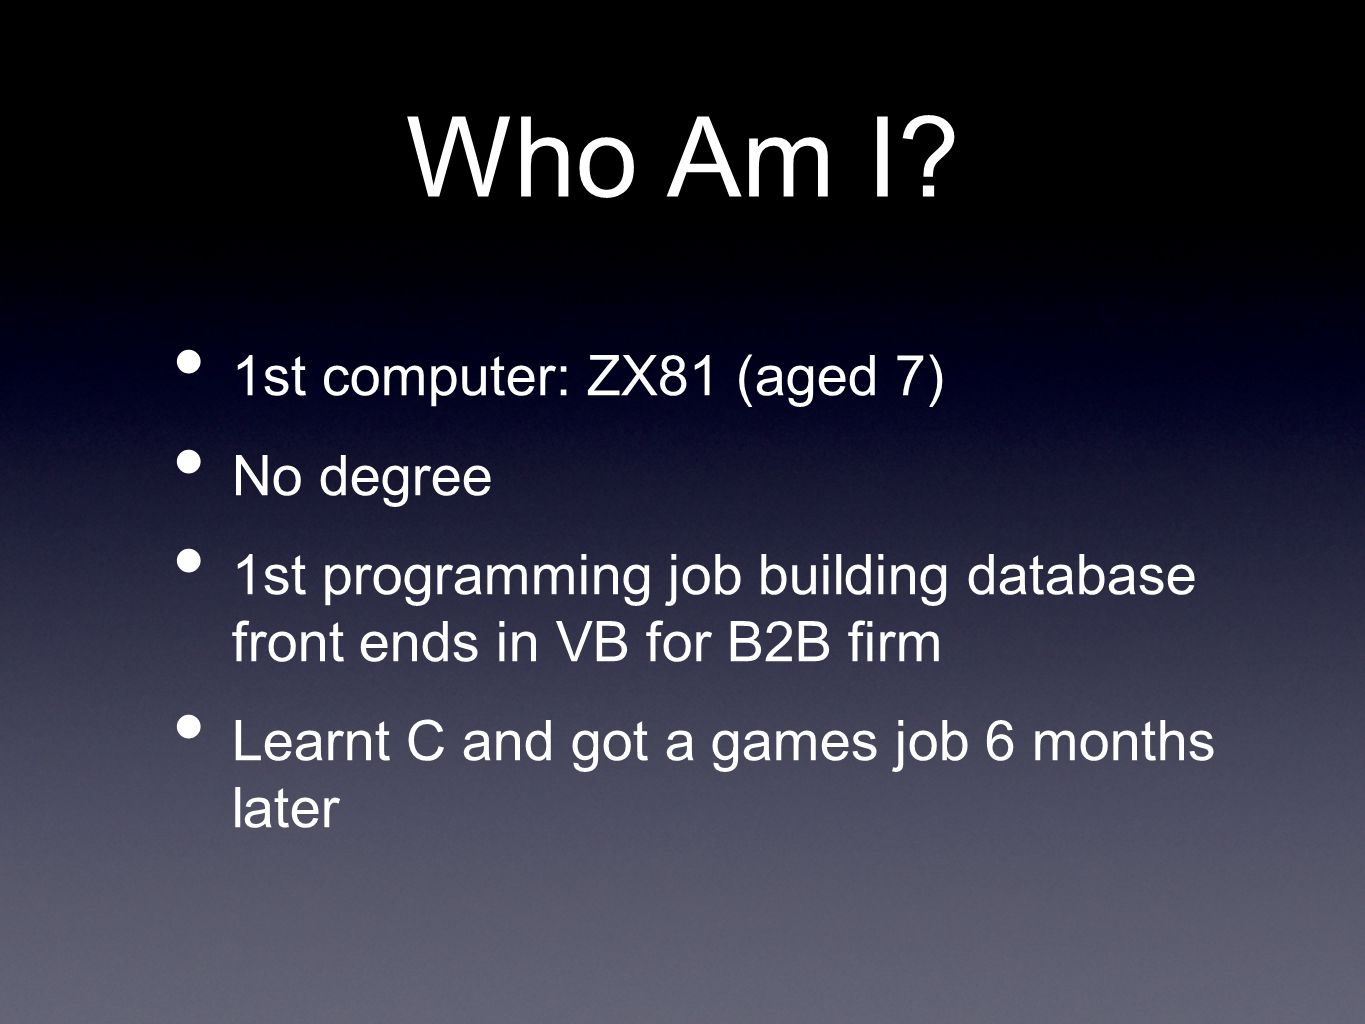 Who Am I? 1st computer: ZX81 (aged 7) No degree 1st programming job building database front ends in VB for B2B firm Learnt C and got a games job 6 mon